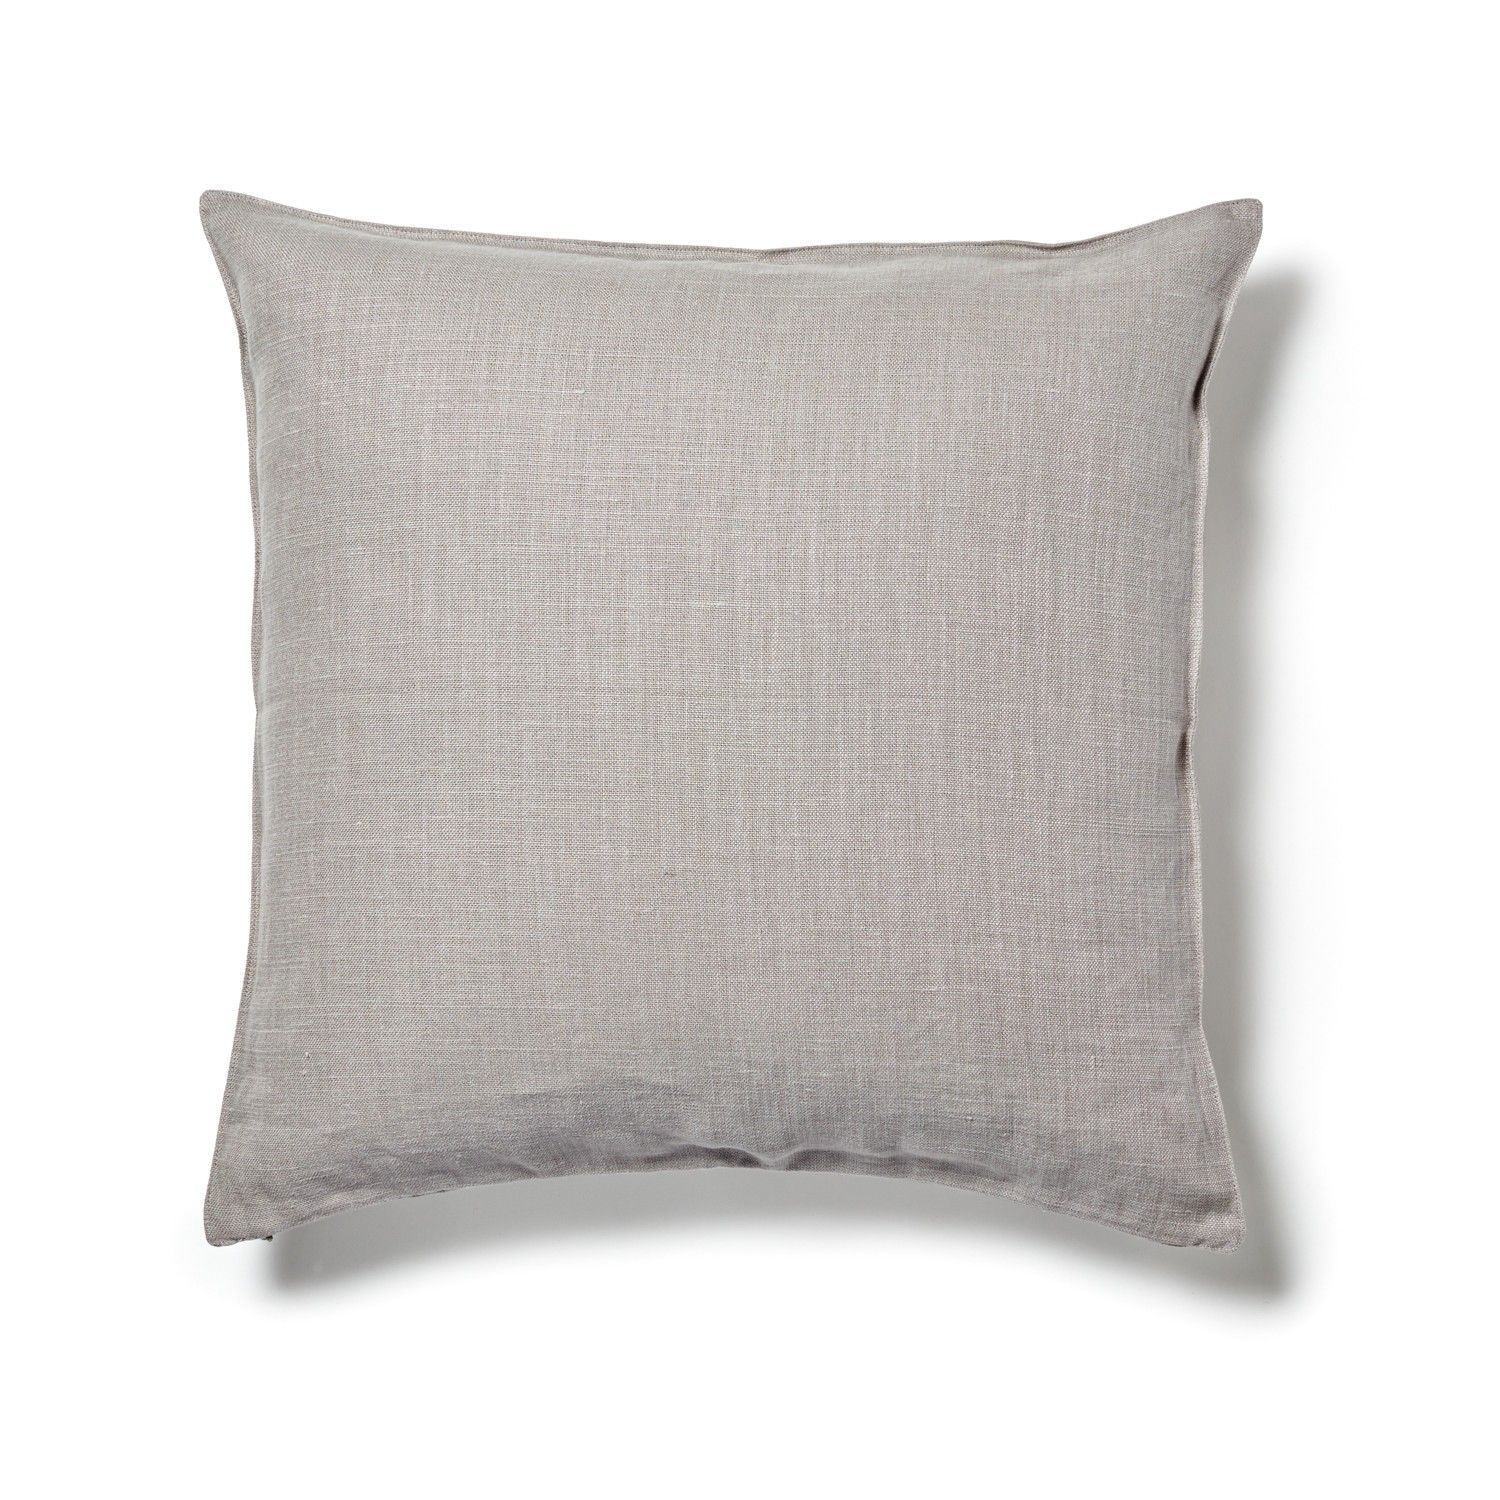 fullxfull cushion pillow organic linen covers stripe grain decorative cover with sack throw grey pure black il listing pillowcase